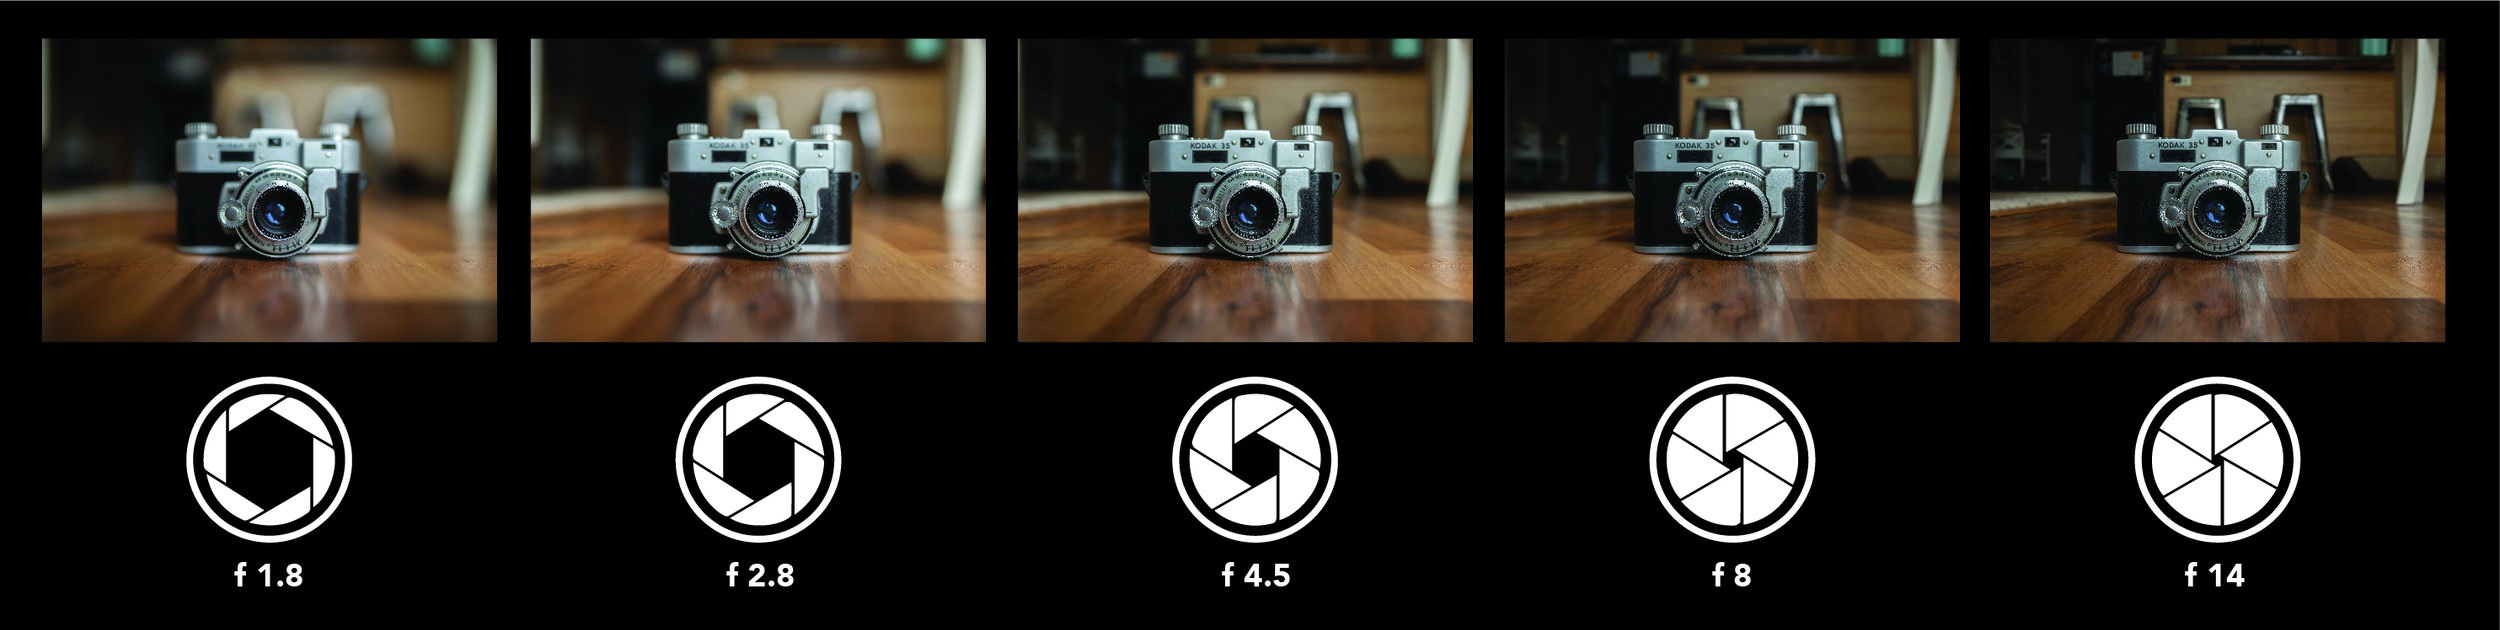 Images demonstrating a 50mm 1.8 lens at various f-stops.